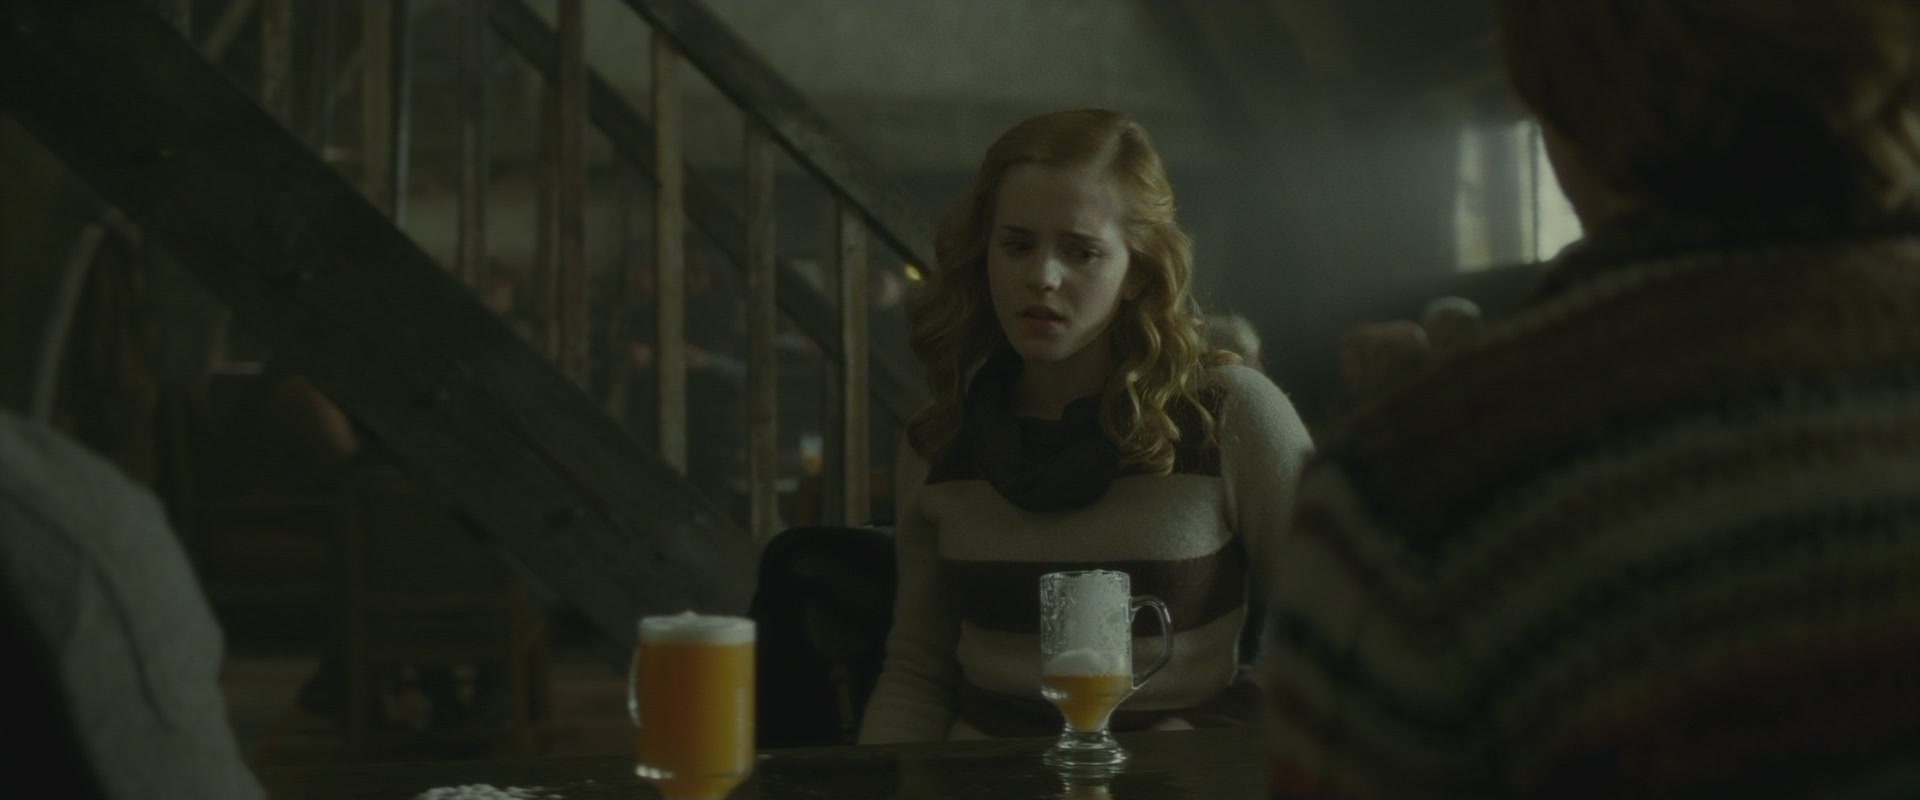 Gallery for hermione half blood prince - Hermione granger and the half blood prince ...